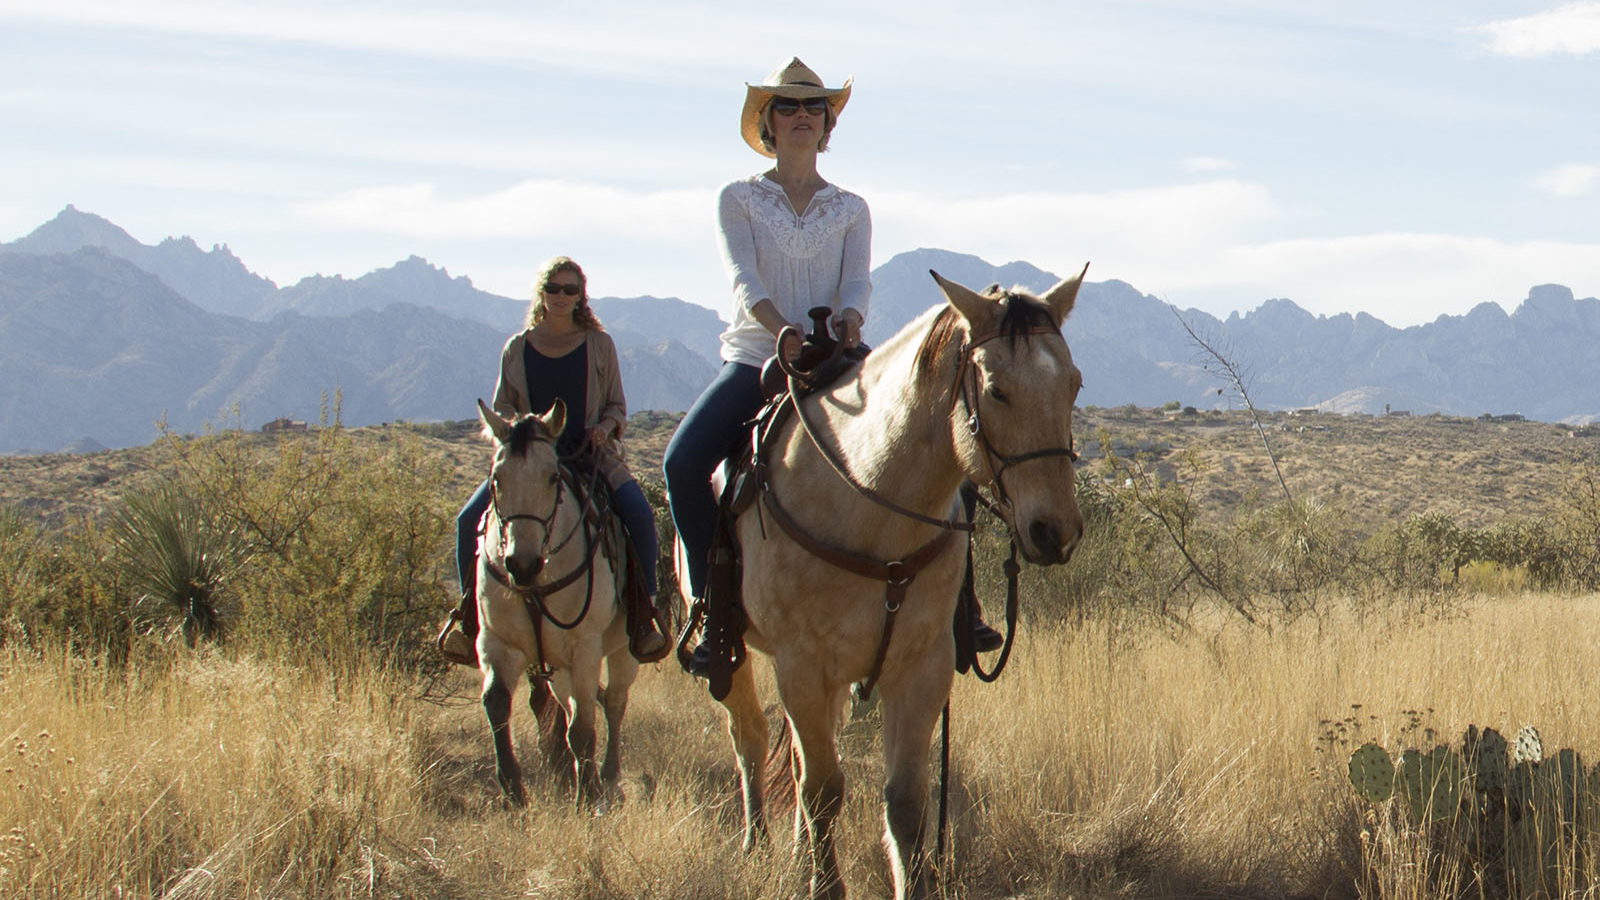 pair of riders on horseback enjoying the desert and mountains